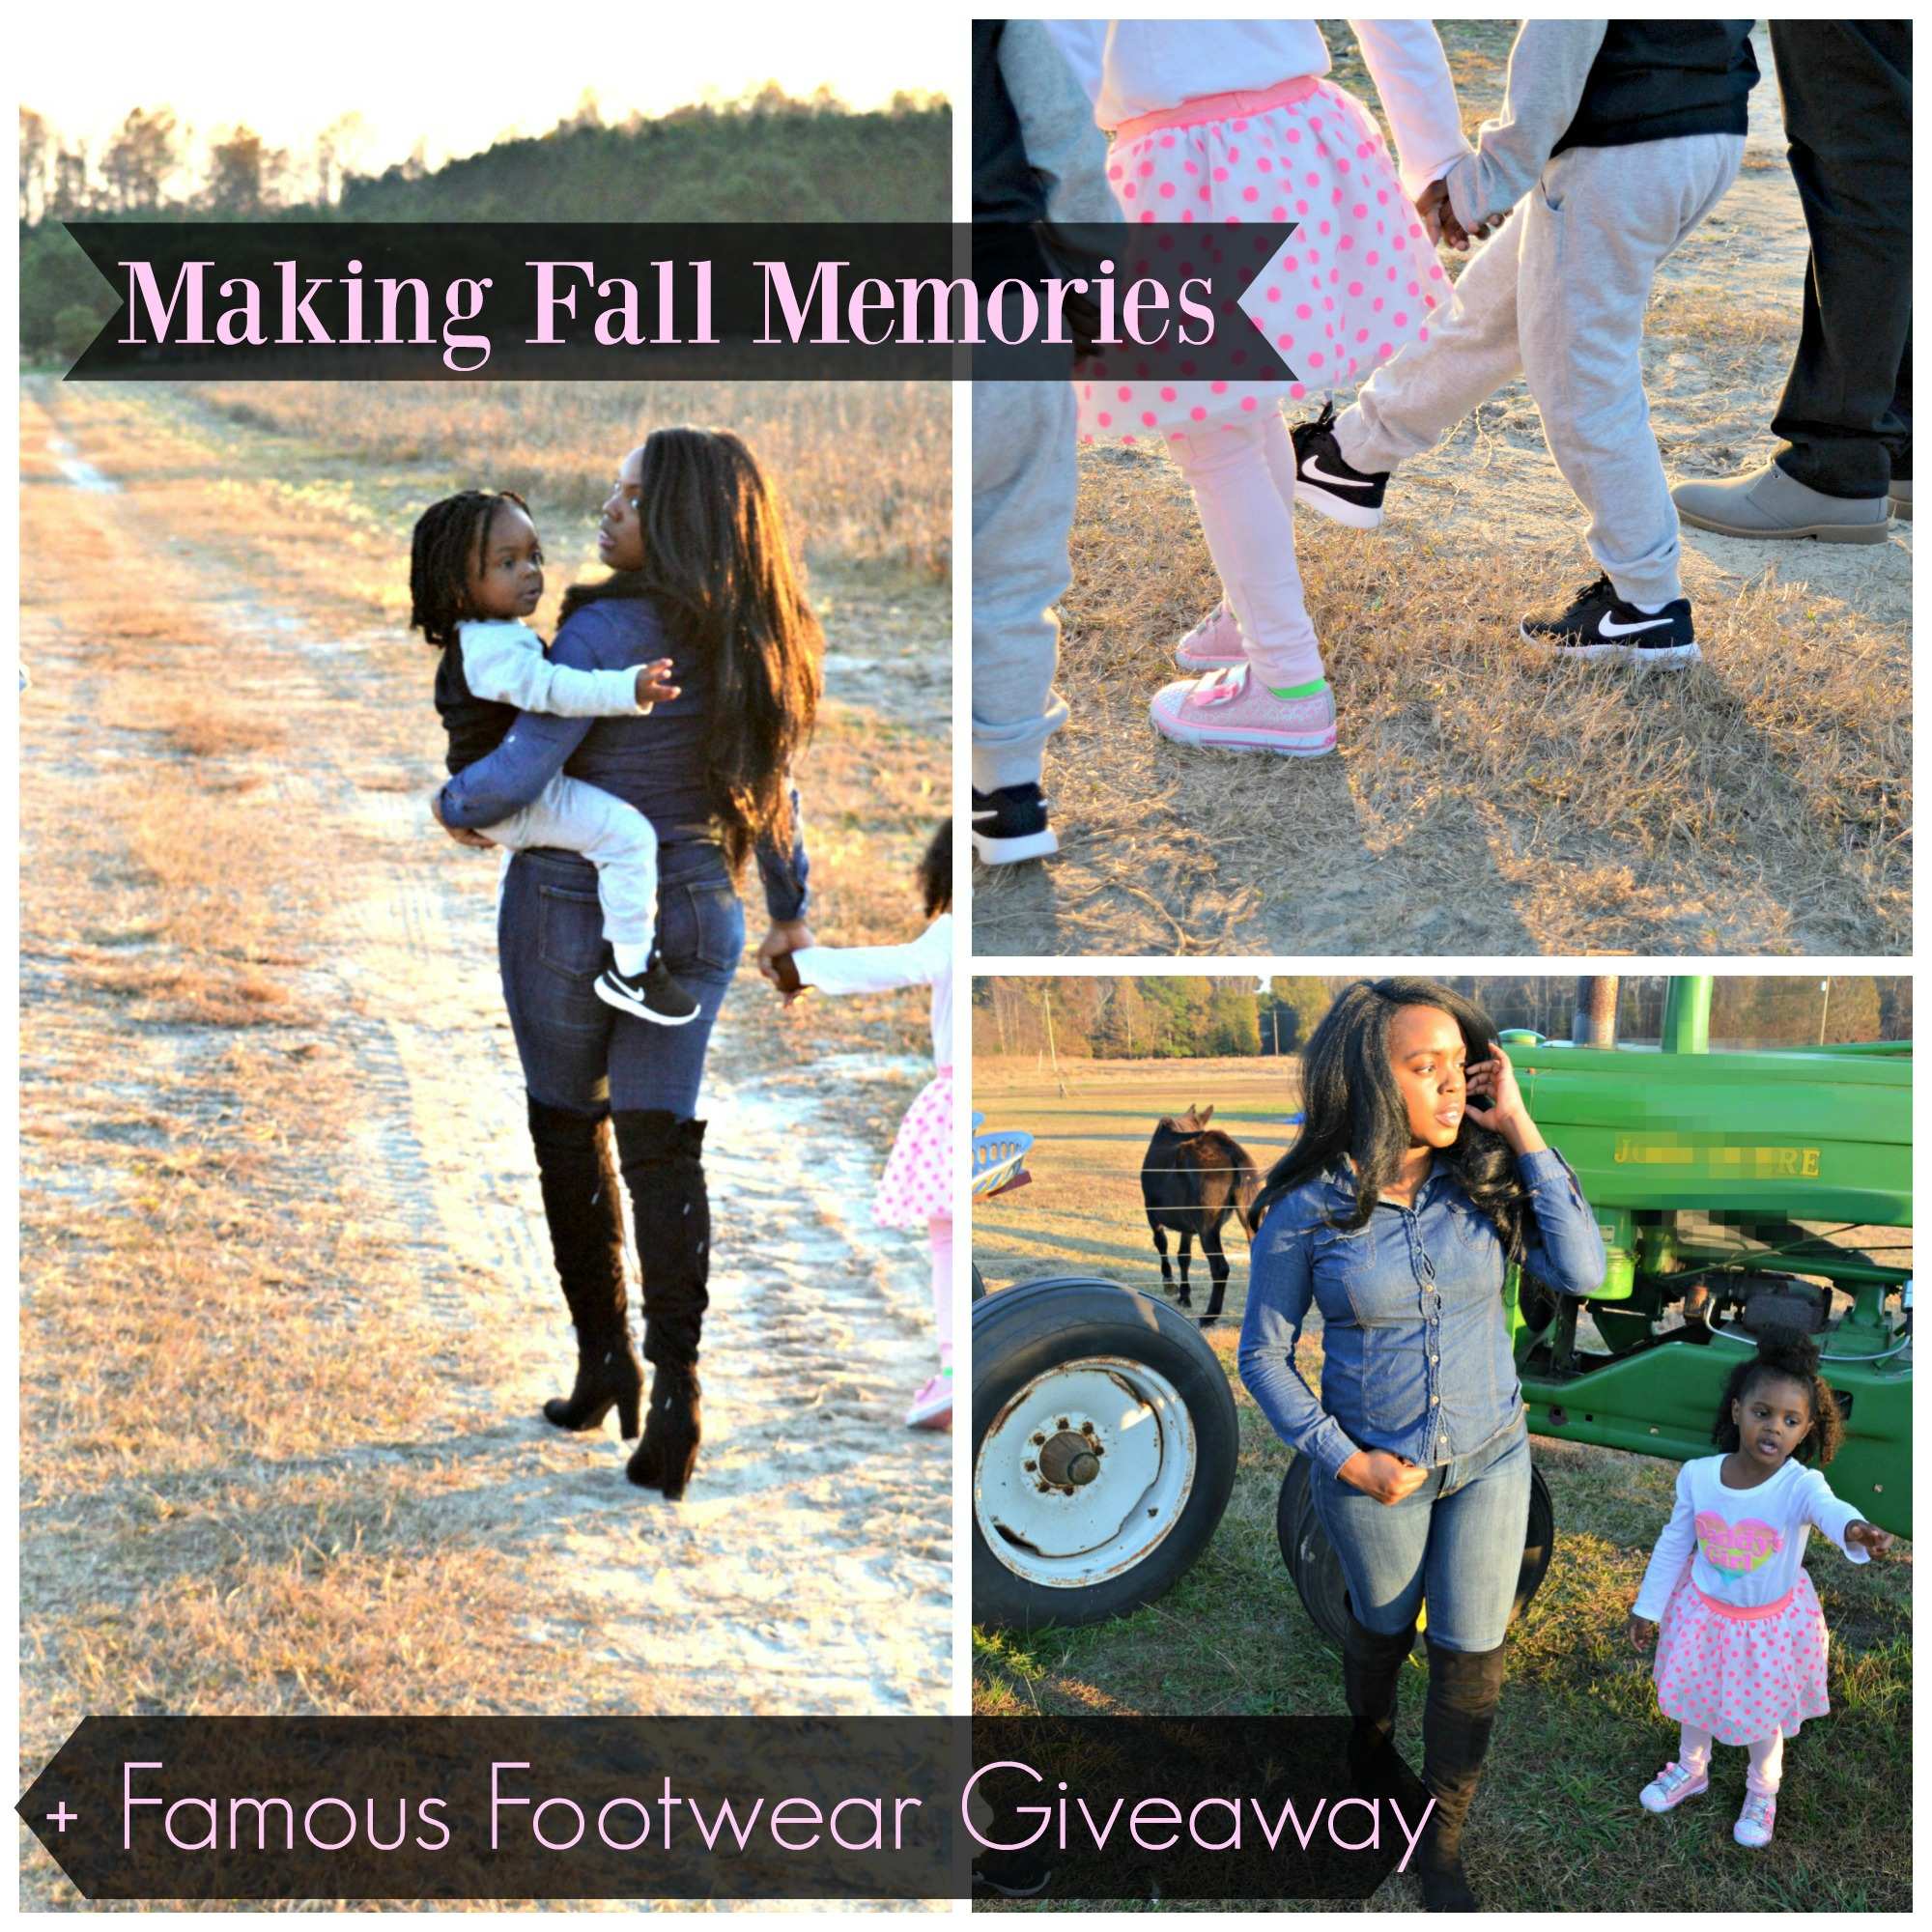 famous footwear-fall-shoes-boots-tanjun-nike-thigh high boots-booties-twinkle toes-sketchers-perry ellis-chukka-boot-black boots-pumpkin patch-virginia